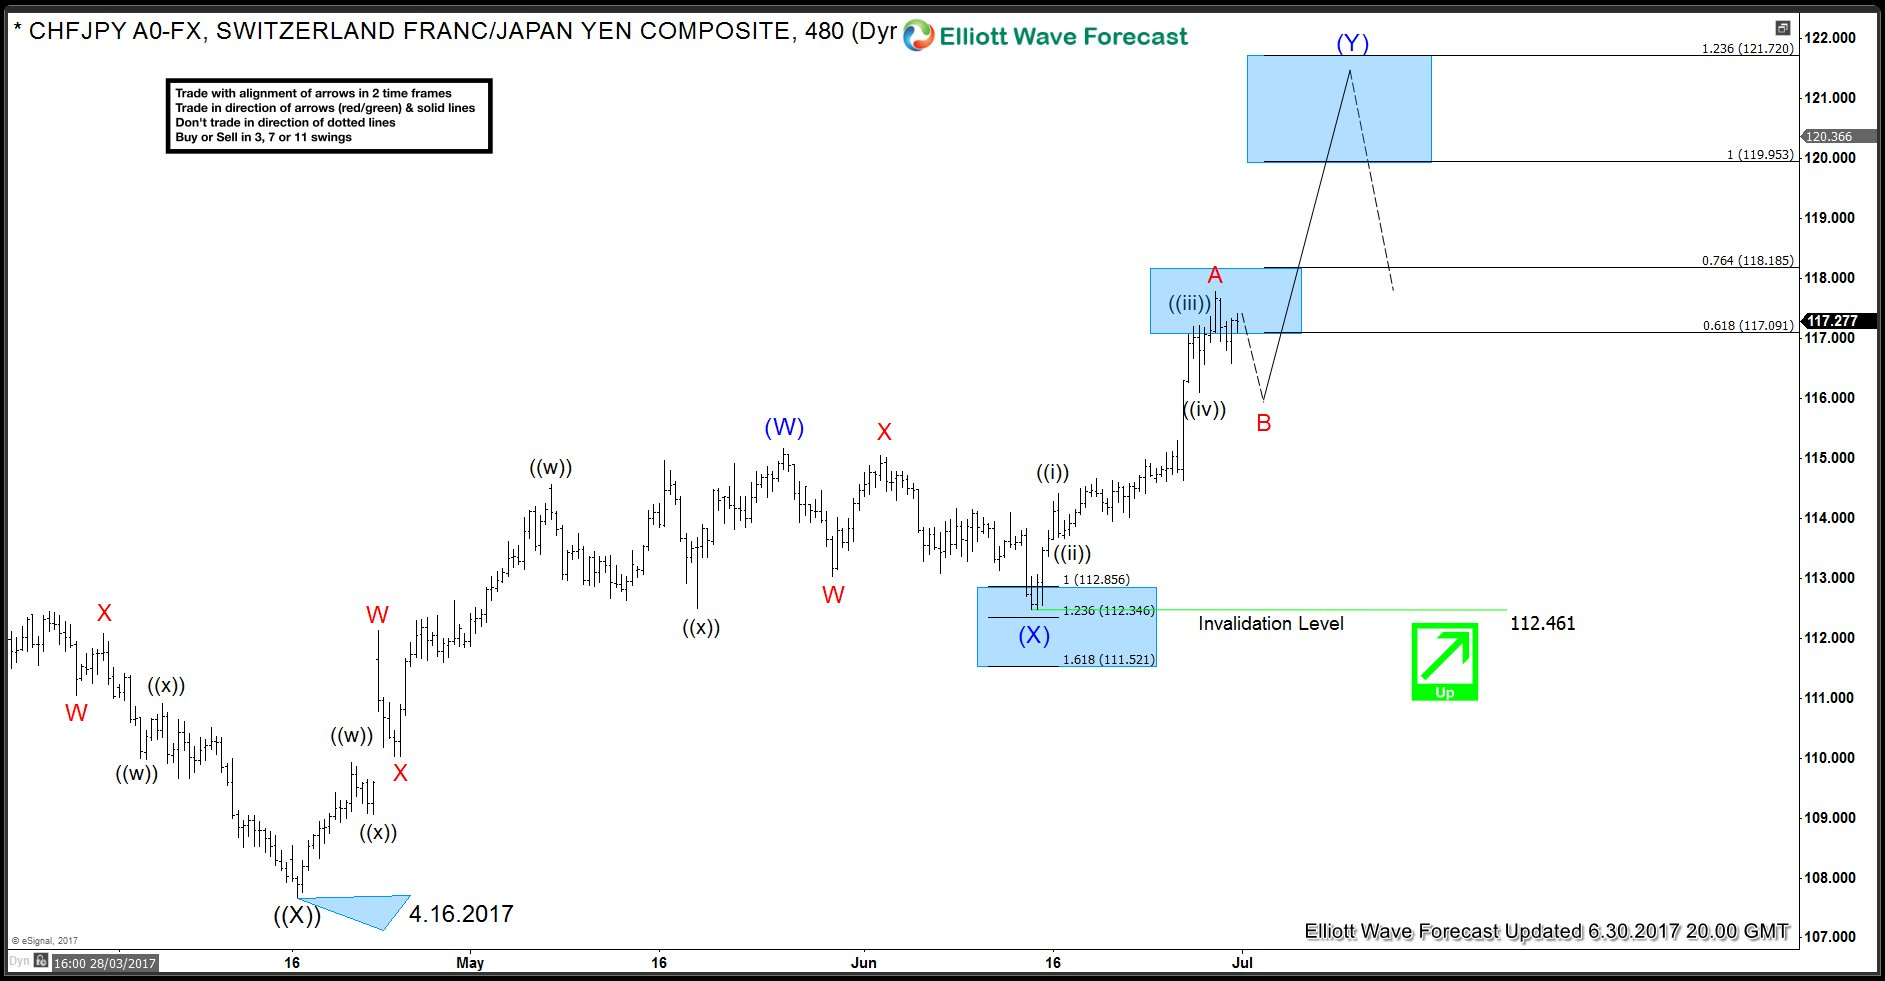 CHF JPY 30 June 4 Hour Elliott Wave Analysis